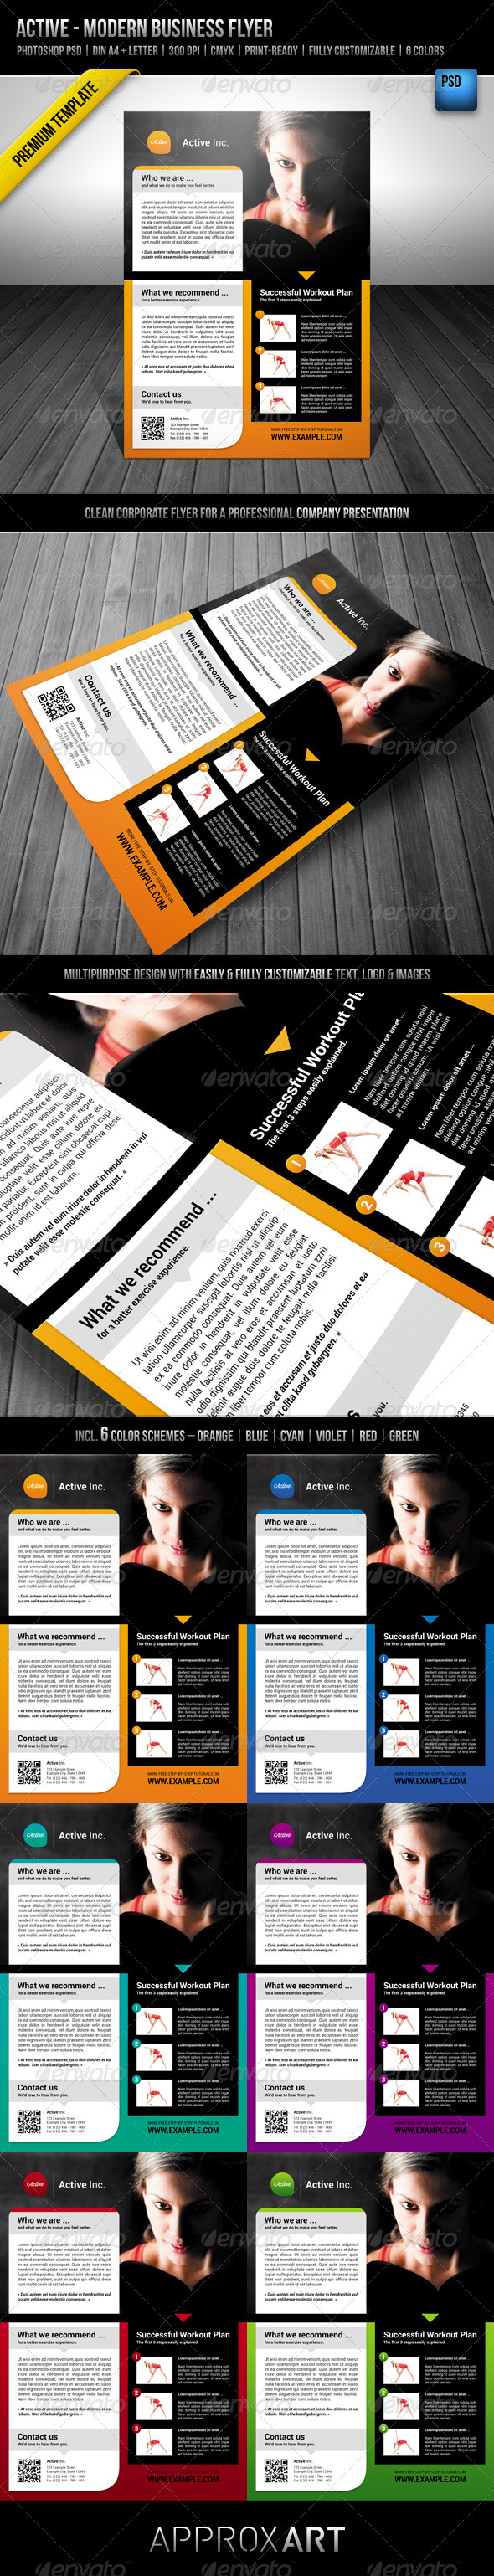 GraphicRiver Active Modern Business Flyer 2311051